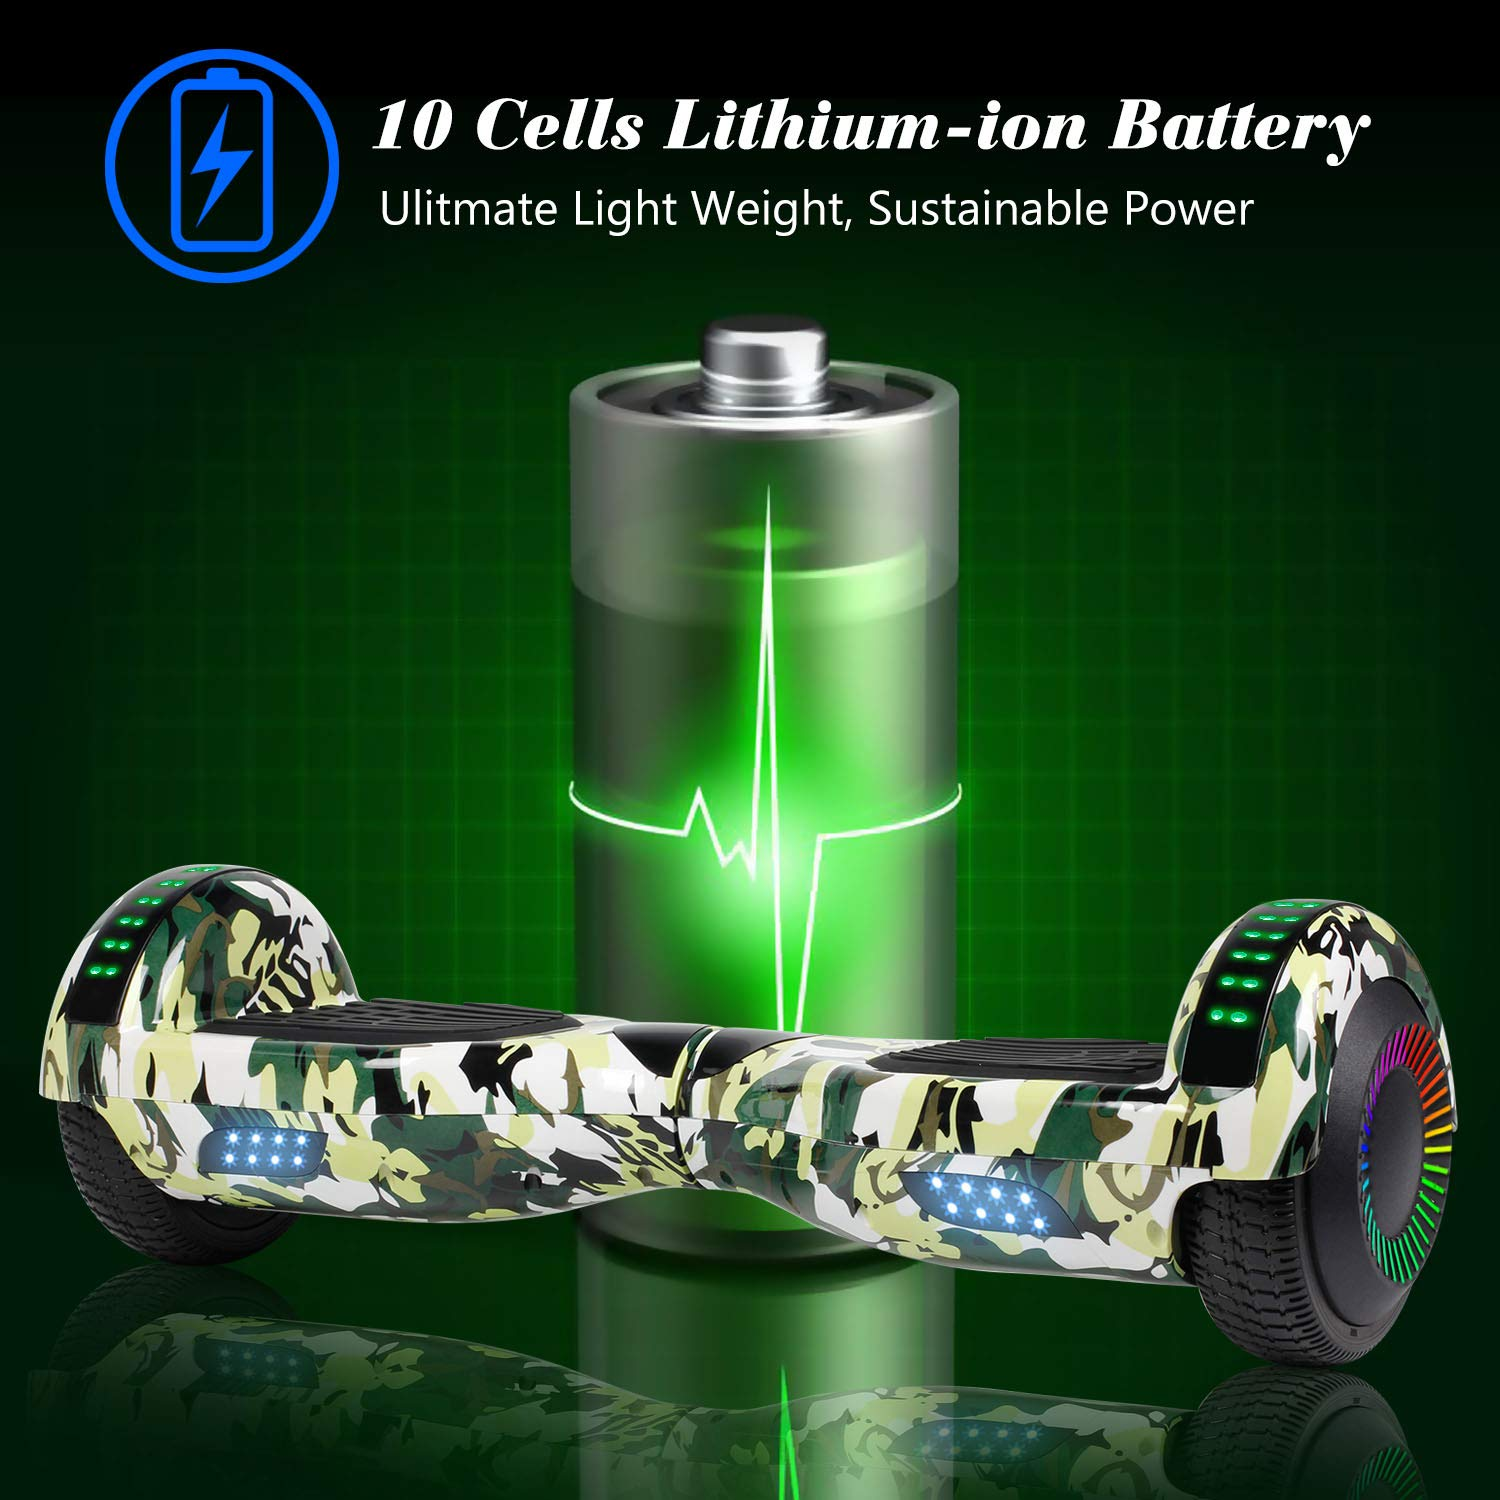 Hoverboard Self Balancing Scooter 6.5'' Two-Wheel Self Balancing Hoverboard with Bluetooth Speaker and LED Lights Electric Scooter for Adult Kids Gift UL 2272 Certified Fun Edition - Woodland Camo by SISIGAD (Image #3)